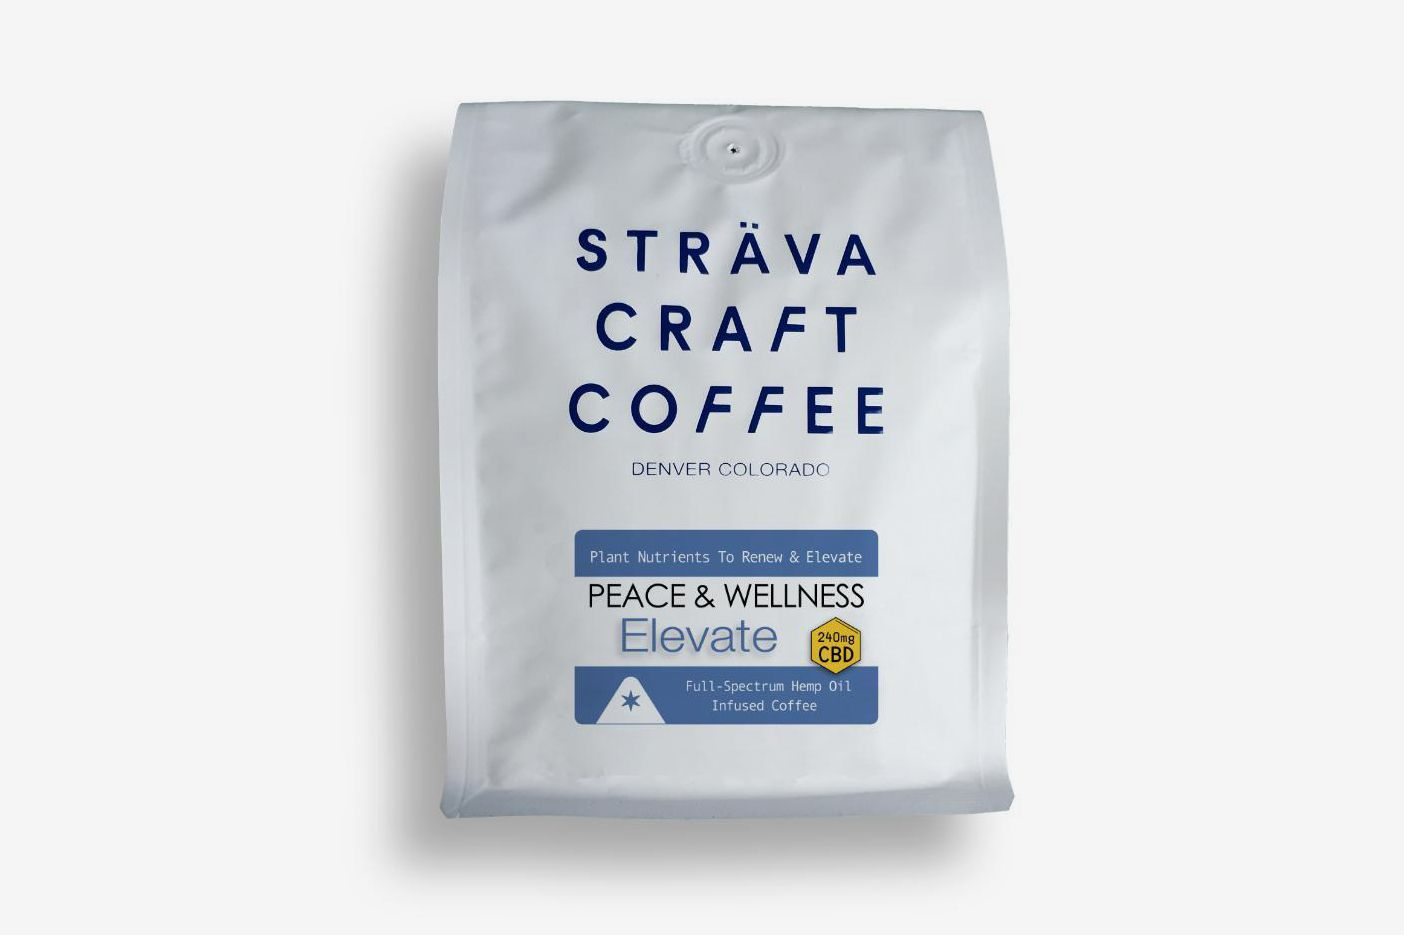 Strava Hemp Oil Infused Coffee